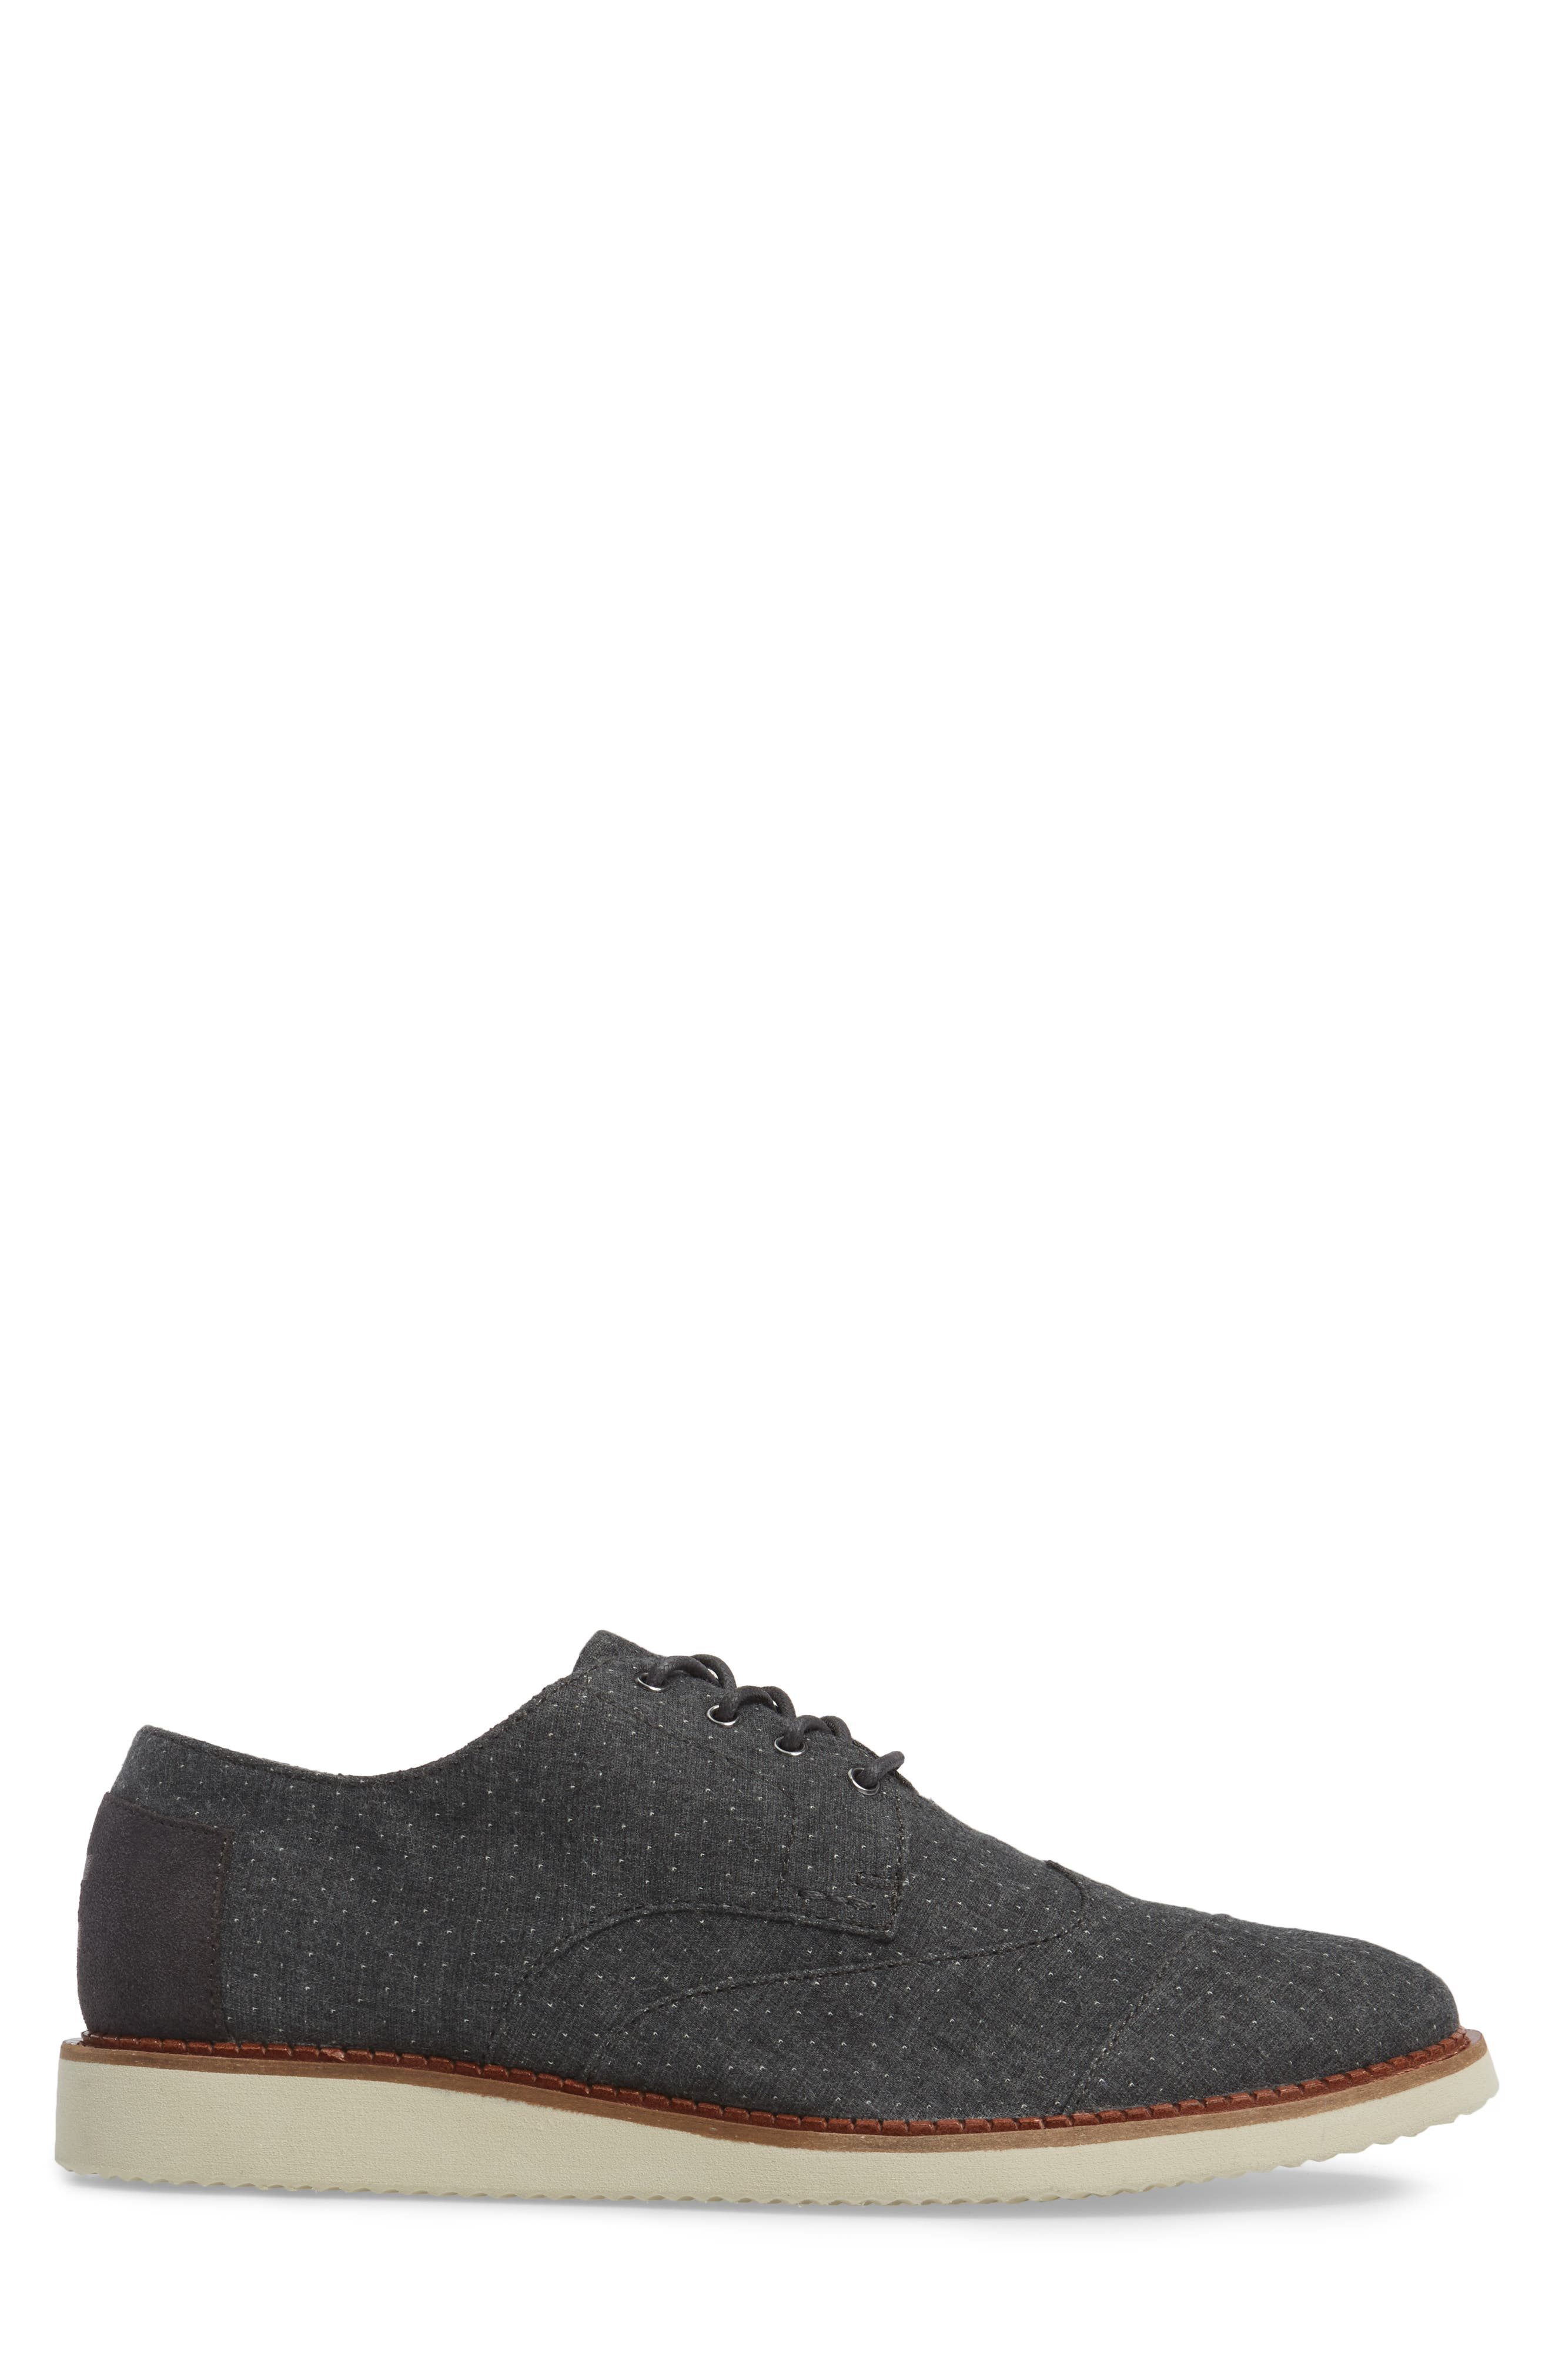 'Classic Brogue' Cotton Twill Derby,                             Alternate thumbnail 3, color,                             Grey